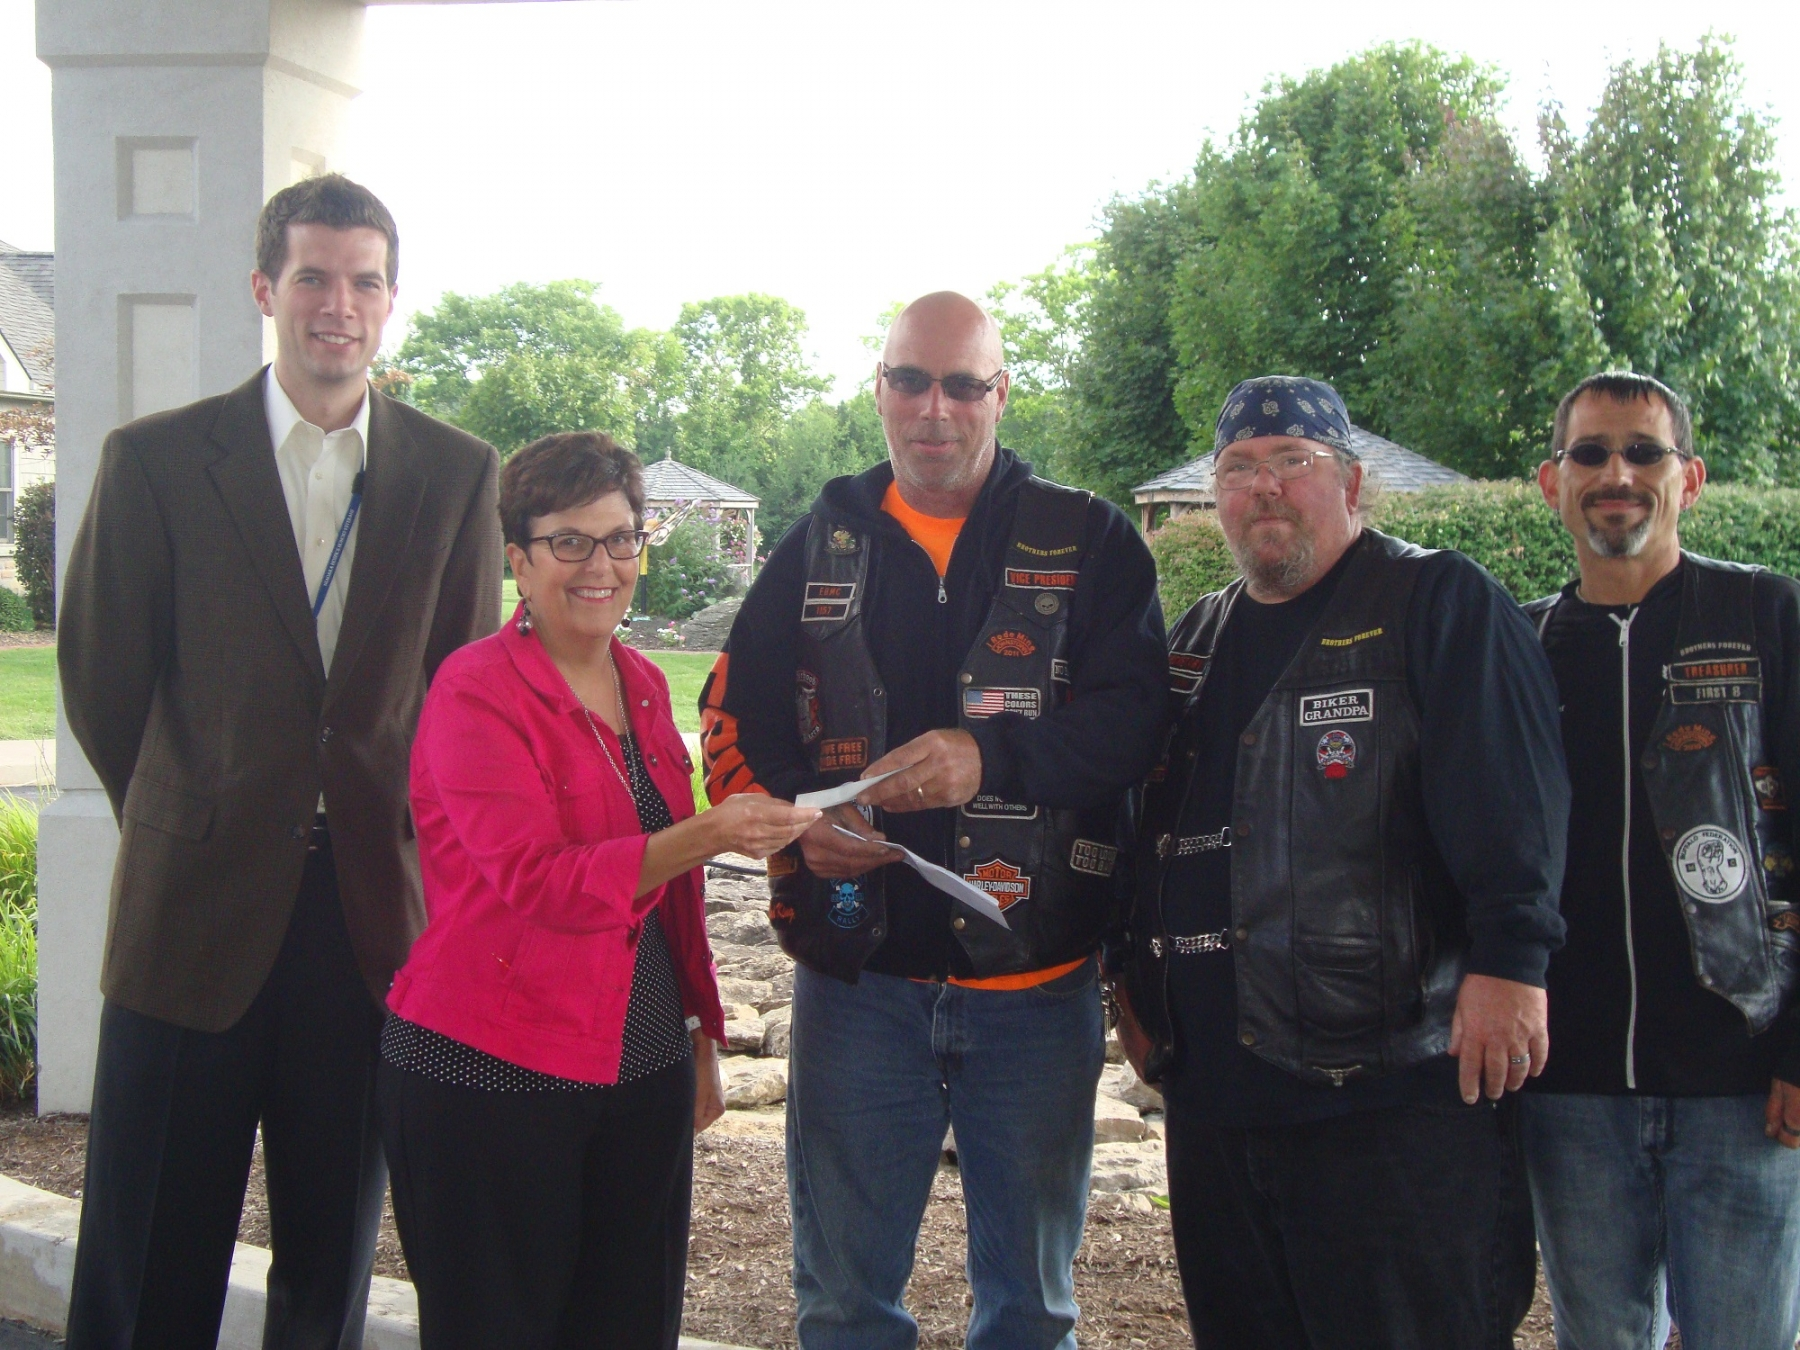 Pictured (right to left) are Eternal Brothers Motorcycle Club Treasurer Chris Bondi, Secretary Dan Rinker, Vice President Bill Ferro, Niagara Hospice Director of Clinical Services at Hospice House Janet M. Ligammari, and Director of Development Brendan McIntyre